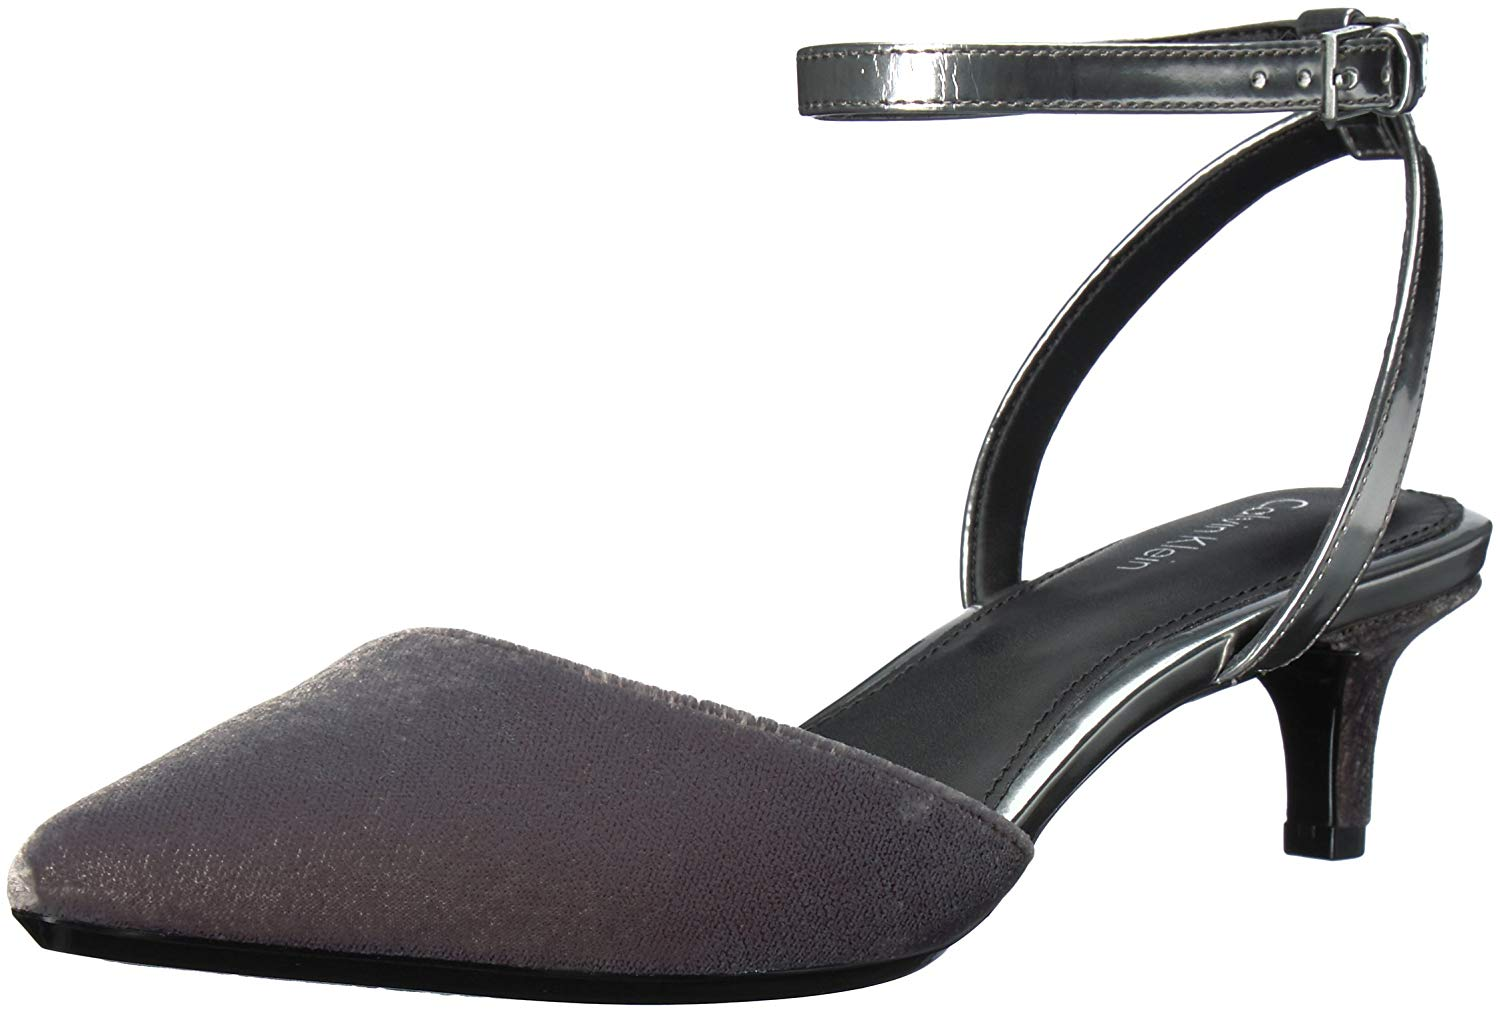 the latest d5201 11a3f Details about Calvin Klein Womens Gogo Pointed Toe SlingBack D-orsay Pumps